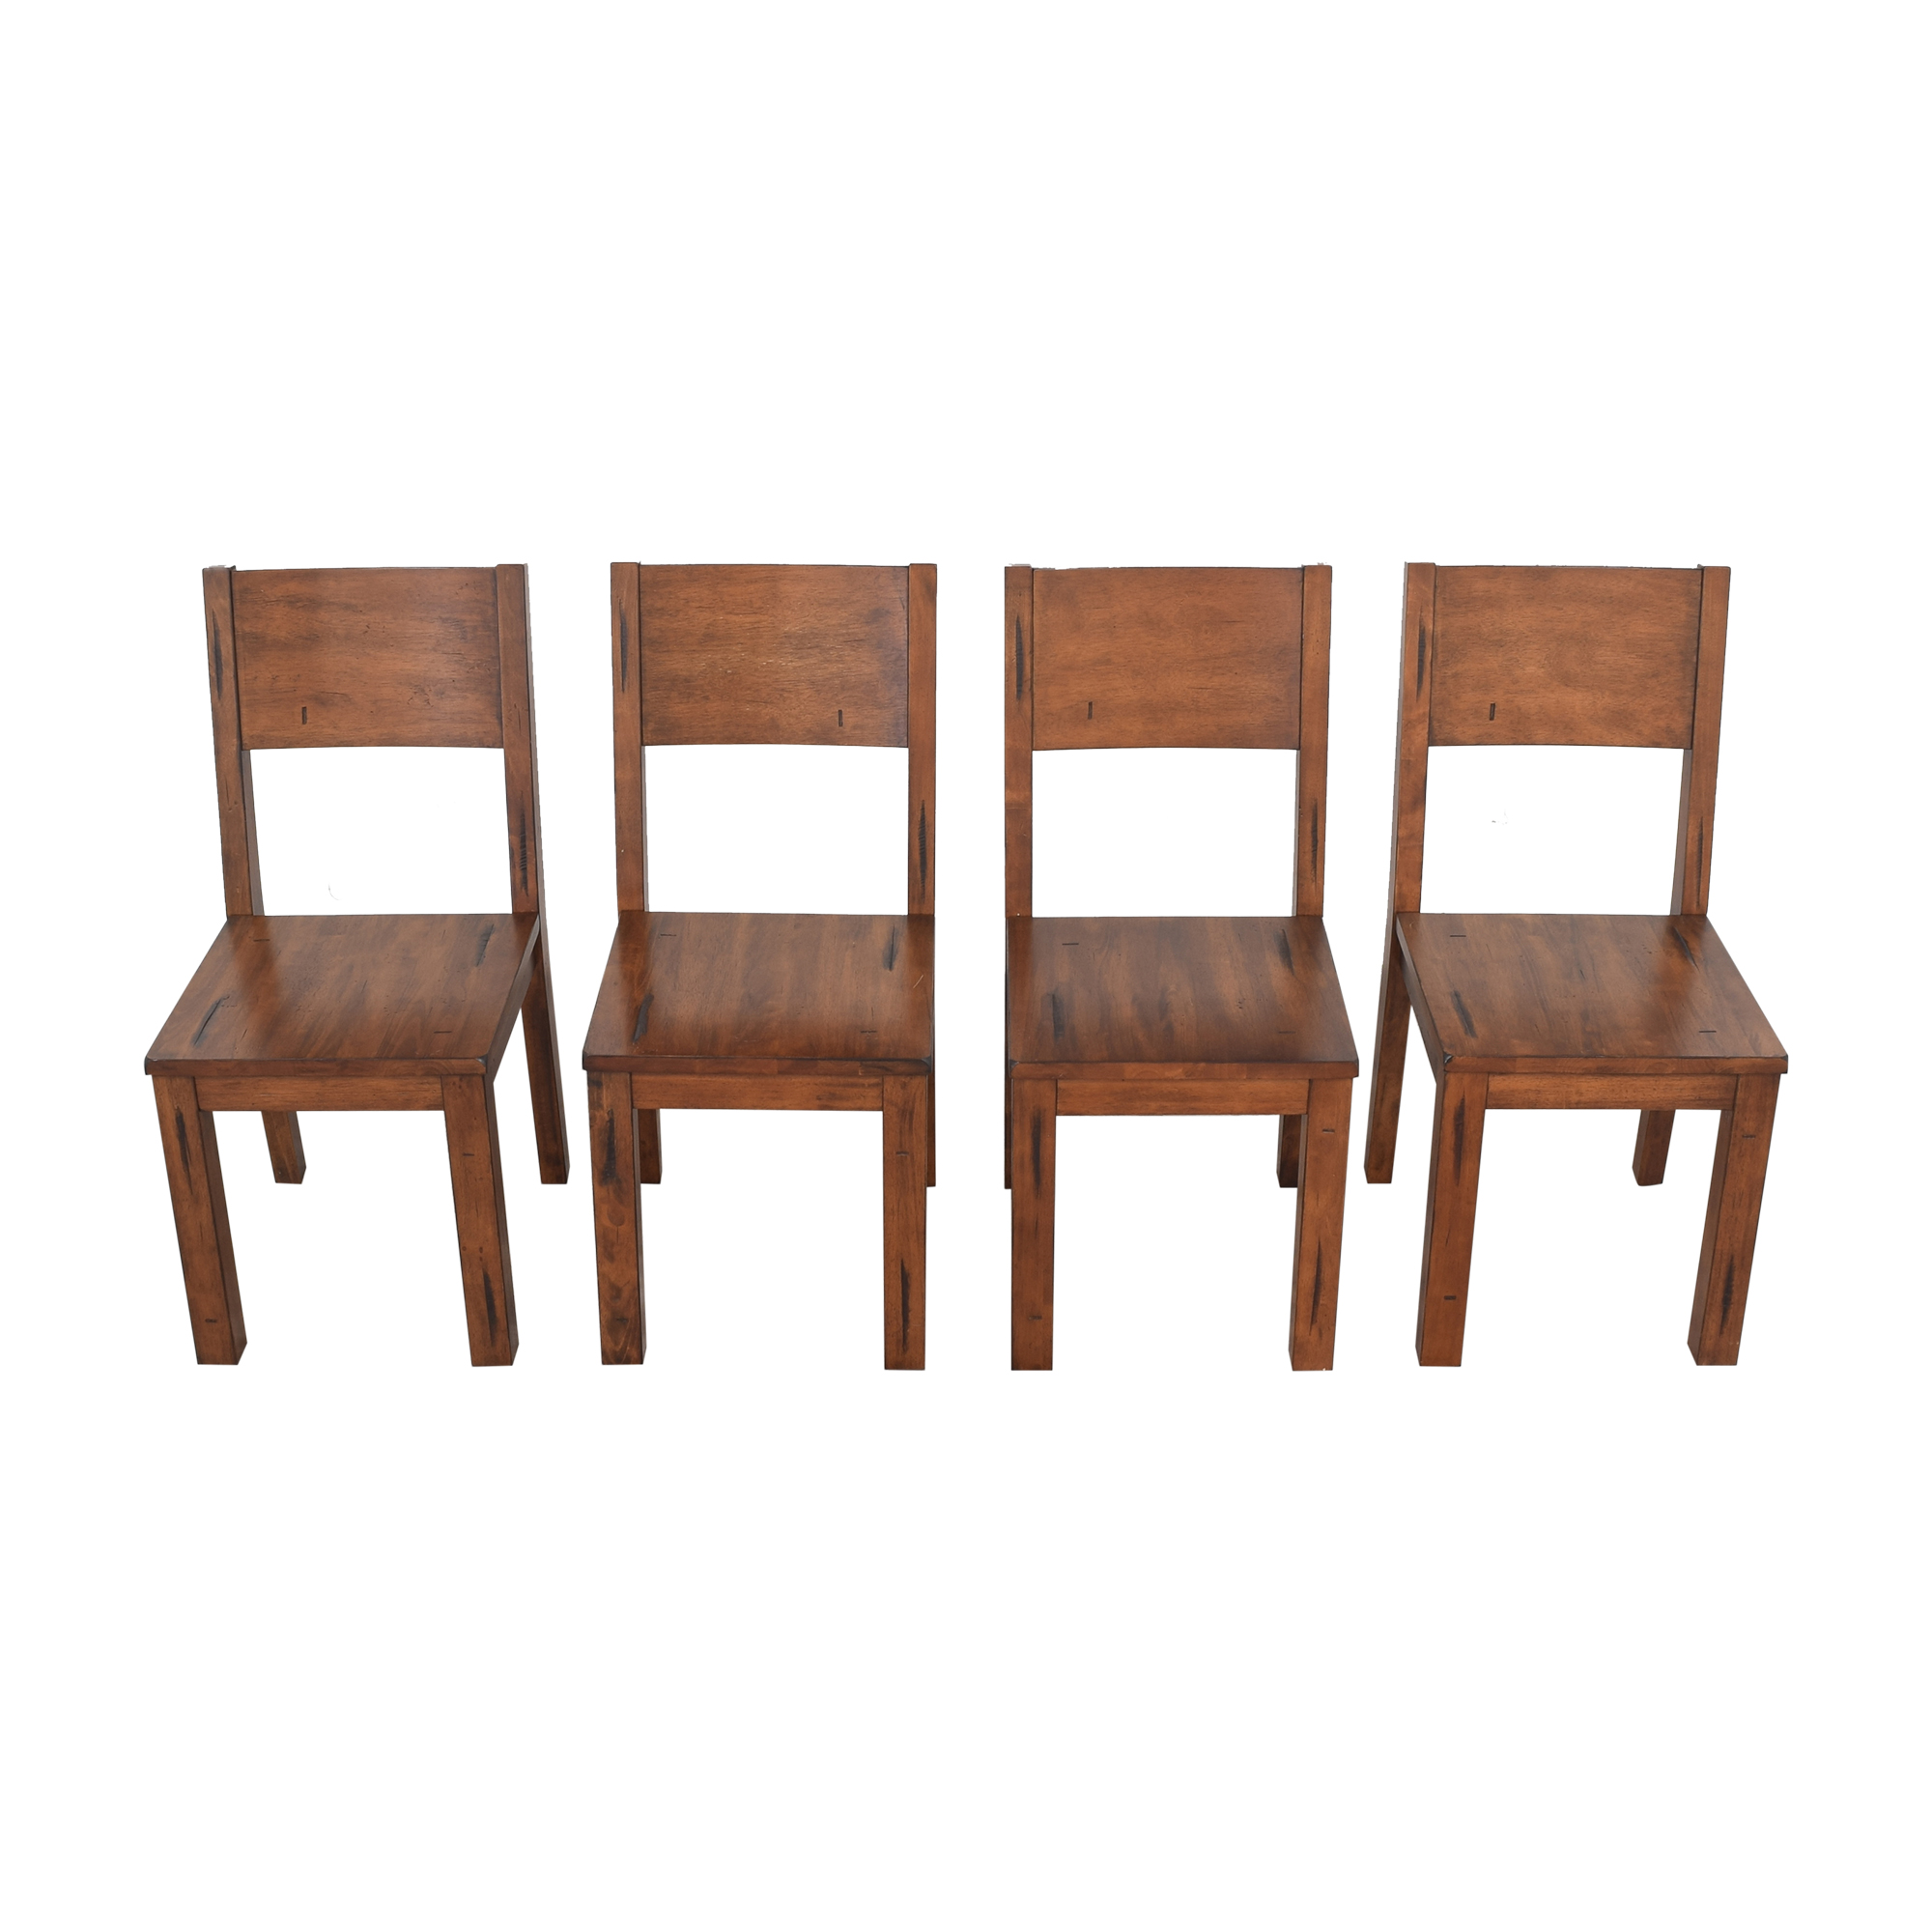 Farmhouse-Style Dining Chairs second hand